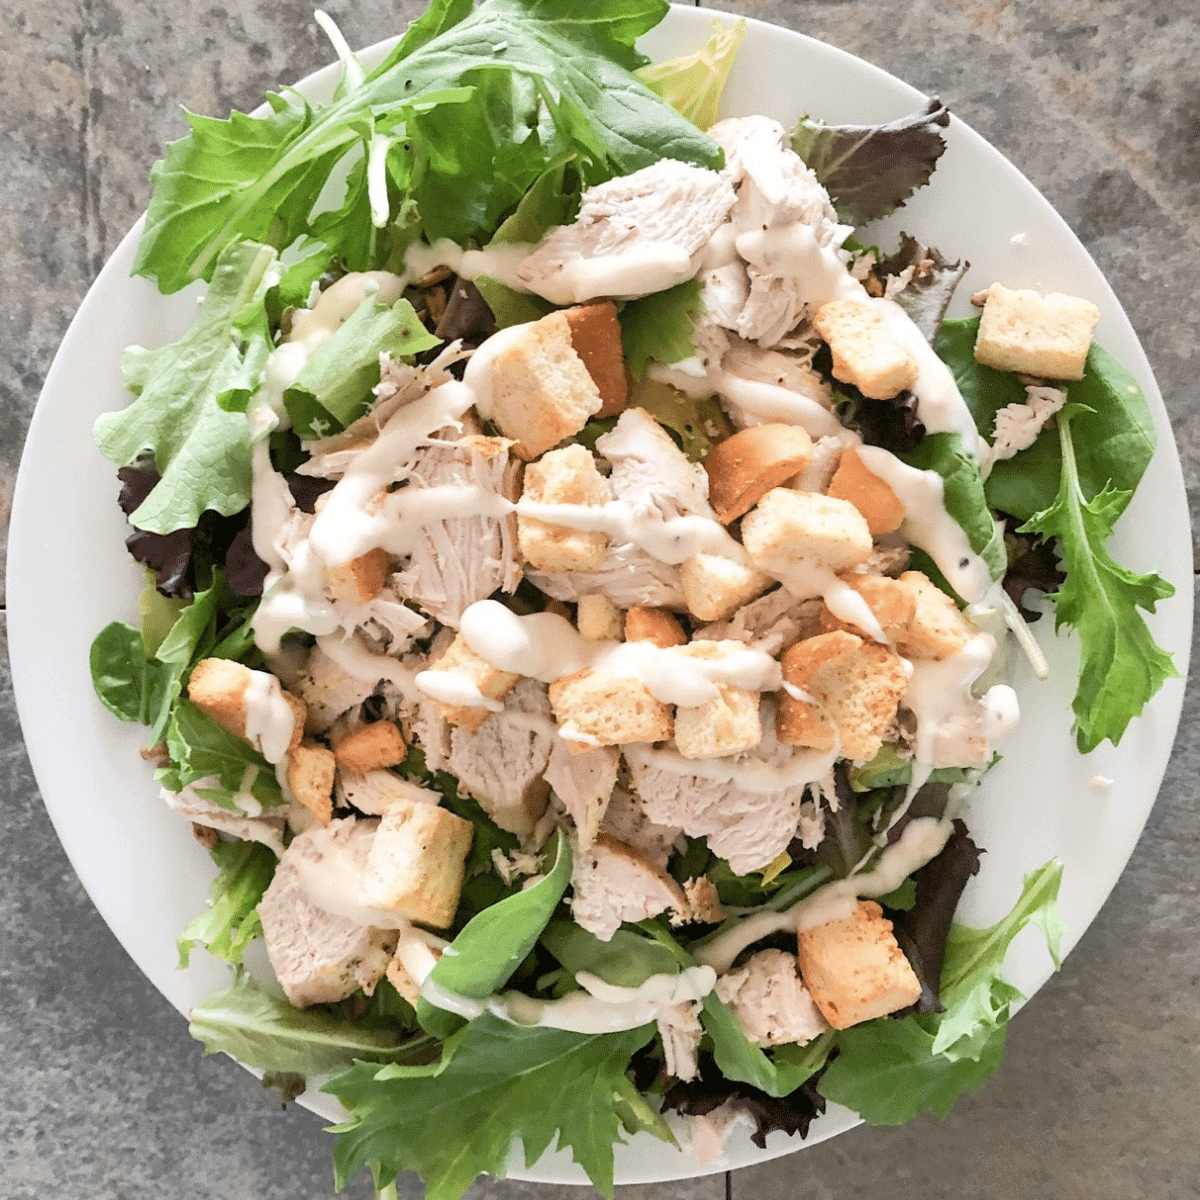 Instant pot chicken breast shredded and served with fresh lettuce and croutons and dressing on a white plate